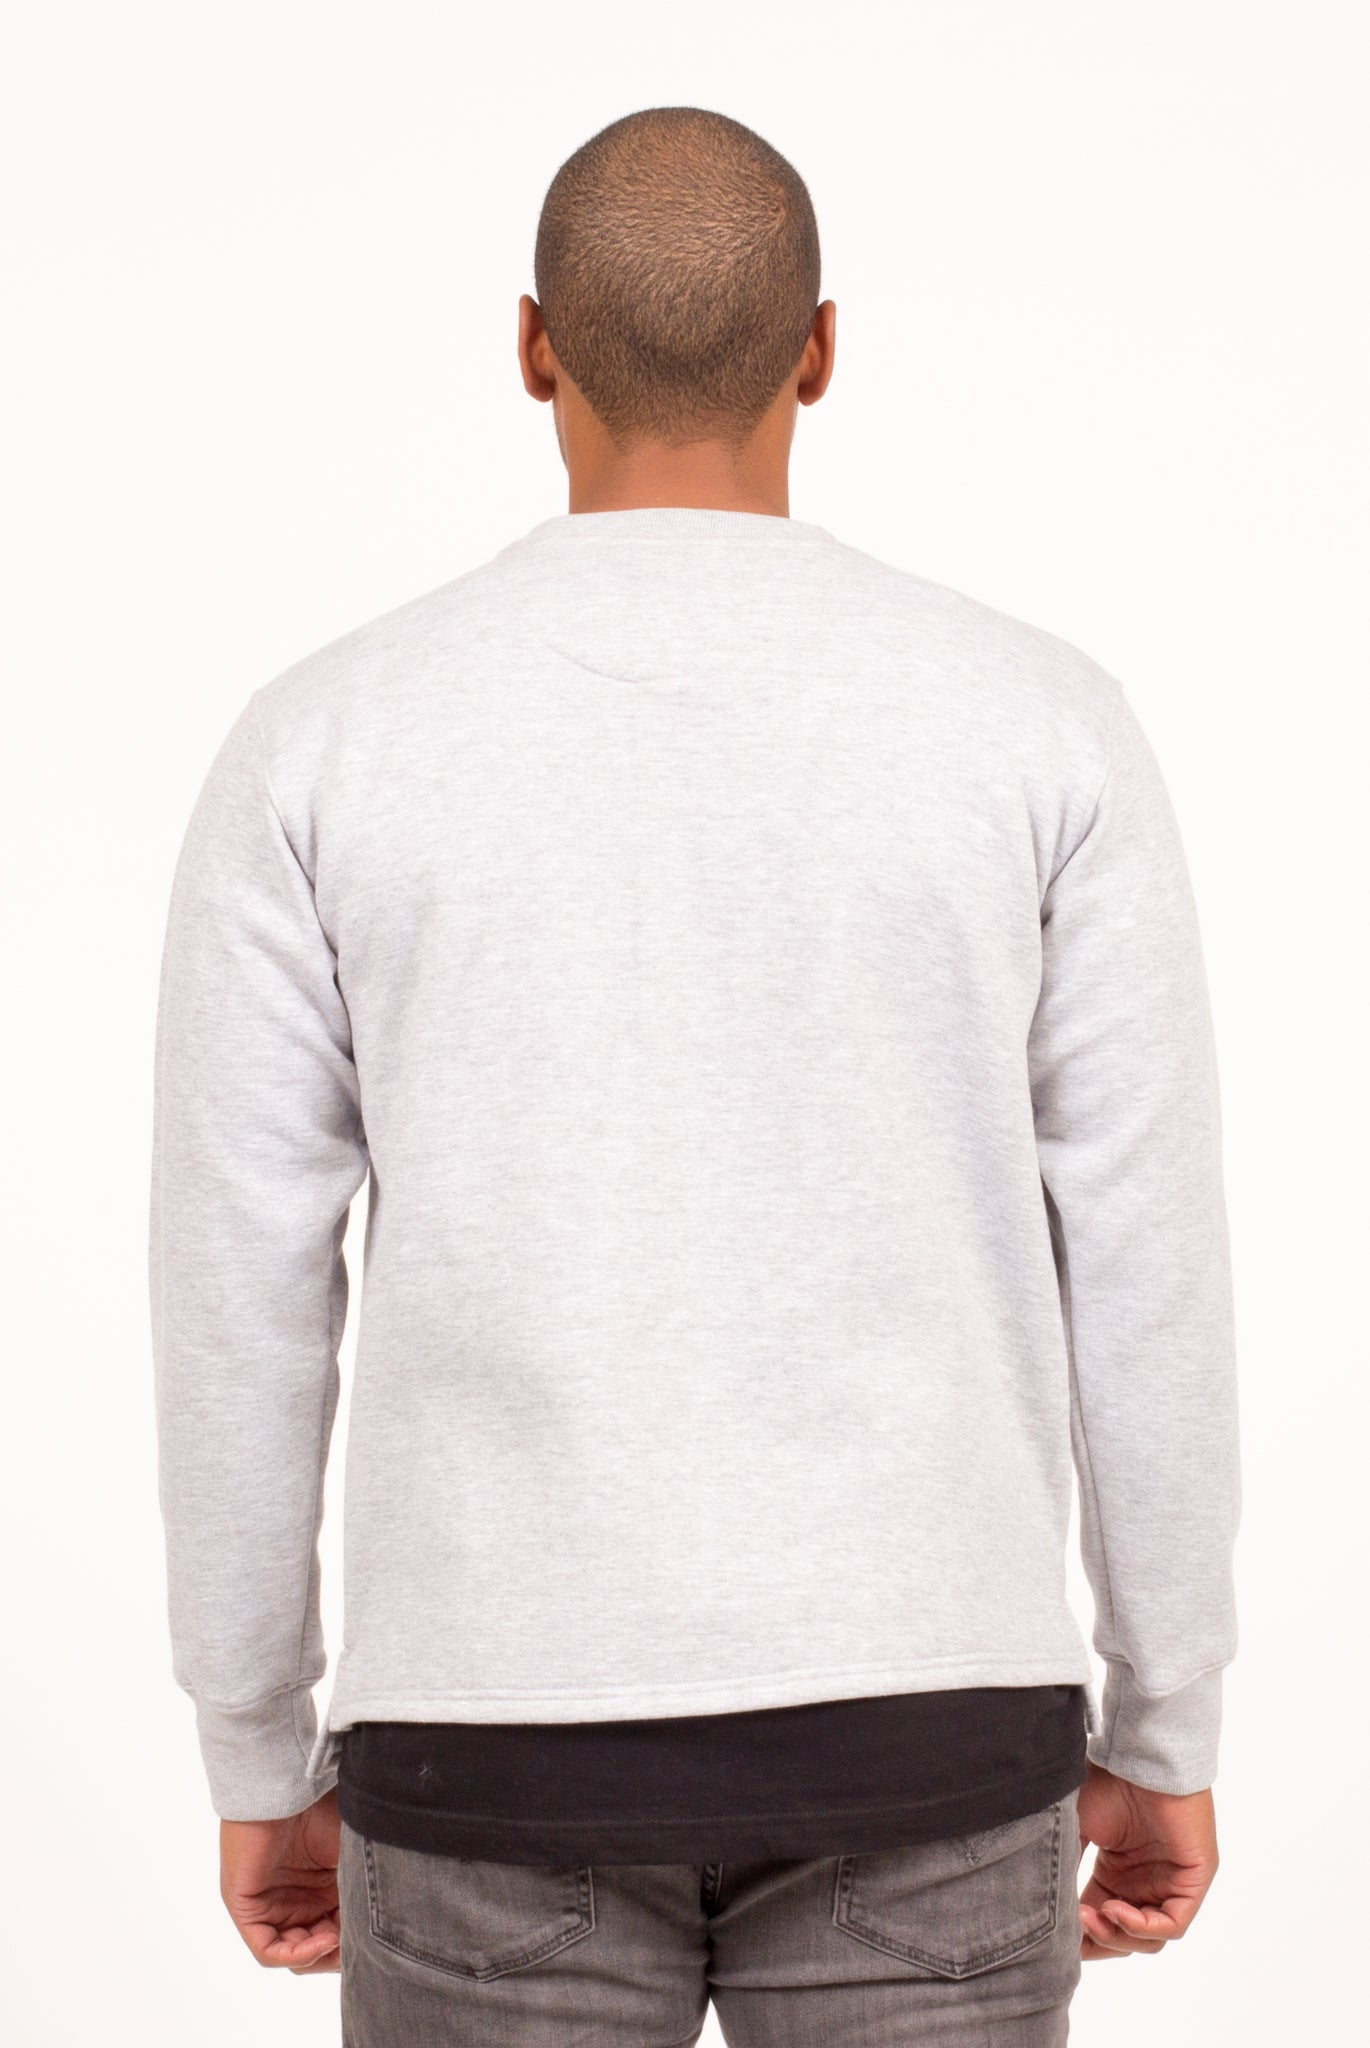 REVERSE SPLIT TAIL CREWNECK IN HEATHER GREY/ OXBLOOD/ ARMY | Poor Little Rich Boy Clothing